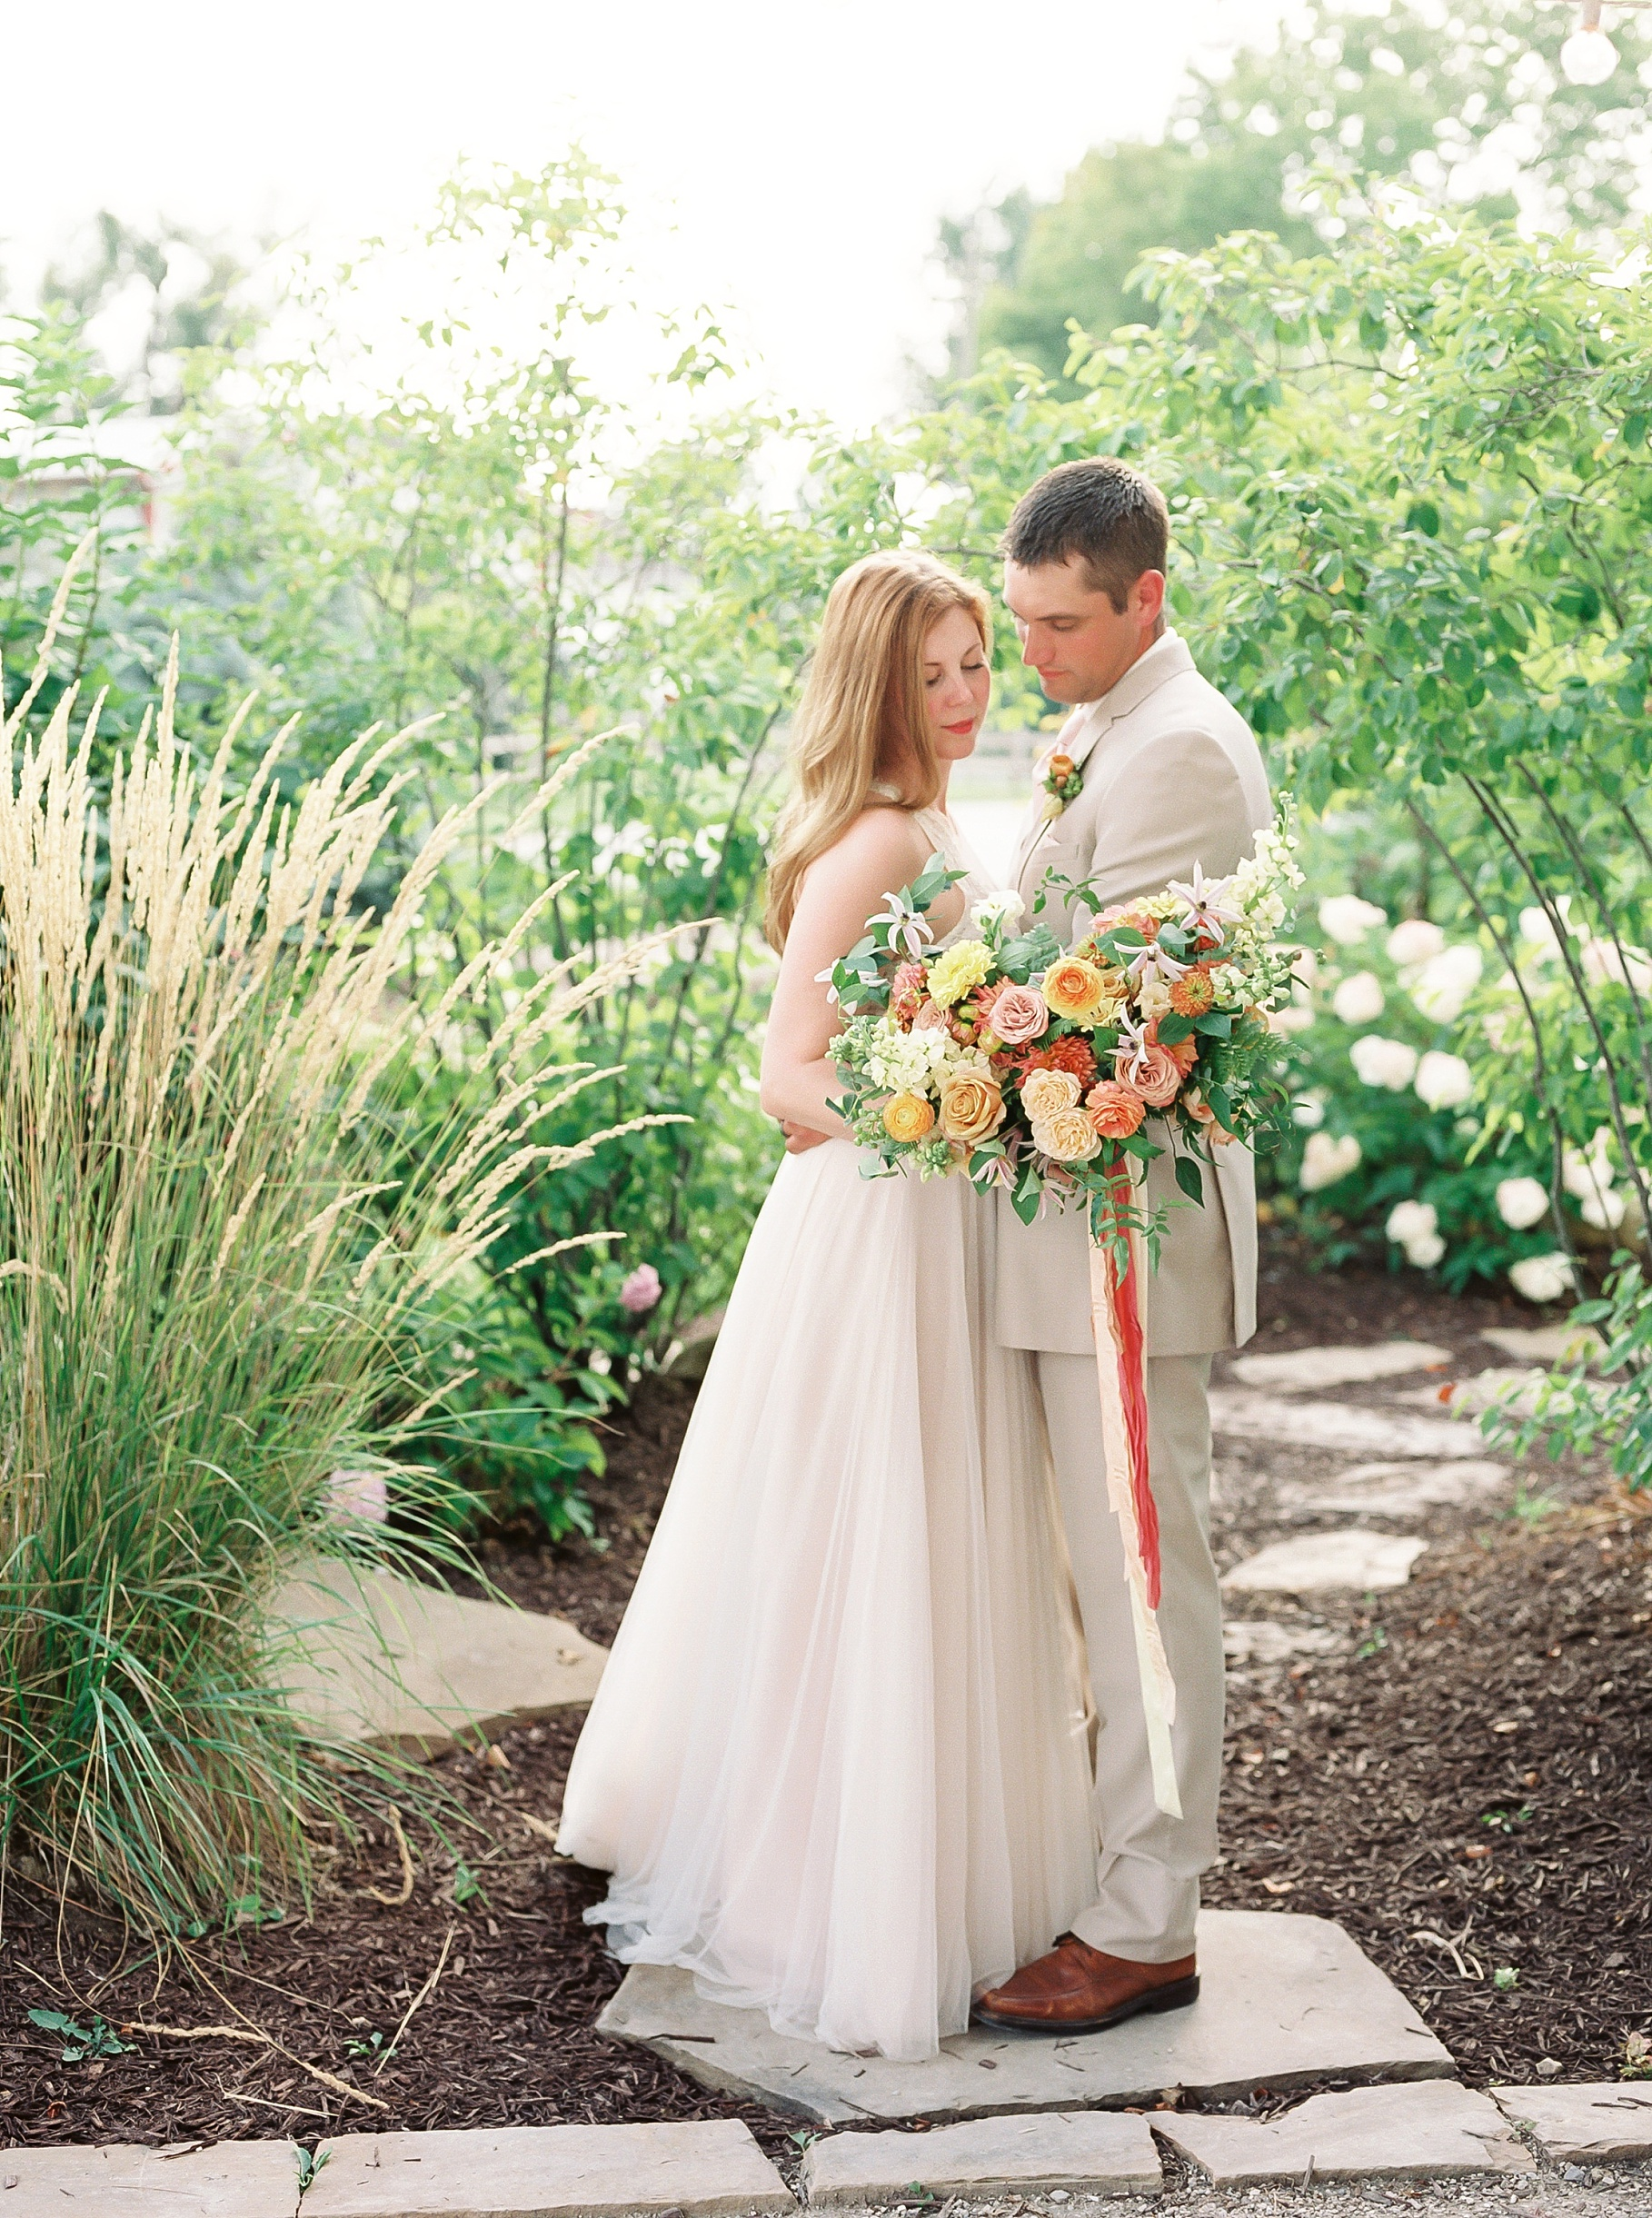 Late Summer Wedding With Pastel Toned Soiree at Blue Bell Farm by Kelsi Kliethermes Photography Best Columbia Missouri Wedding Photographer_0064.jpg